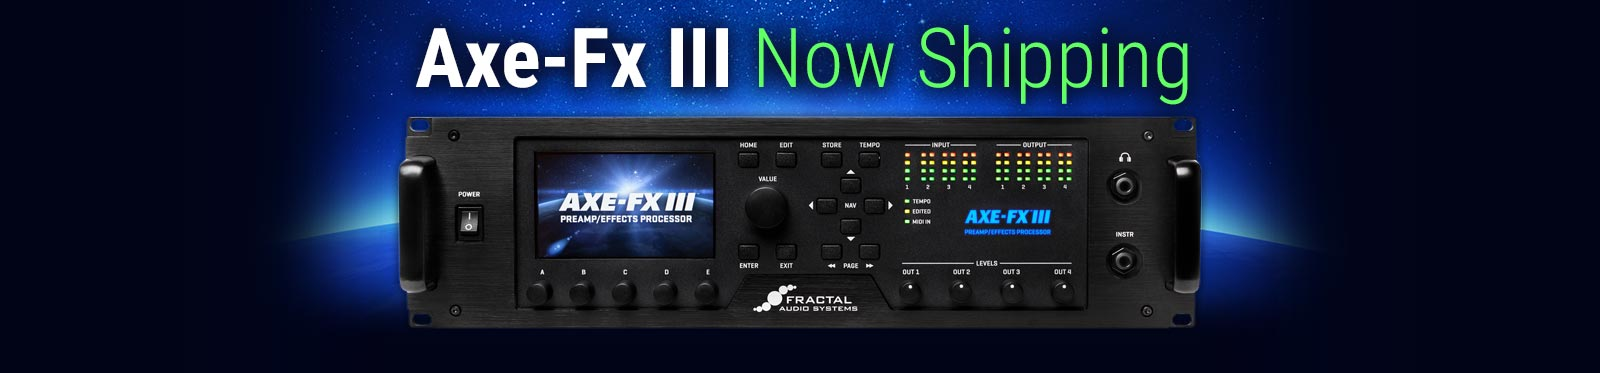 Axe-Fx III - Now Shipping